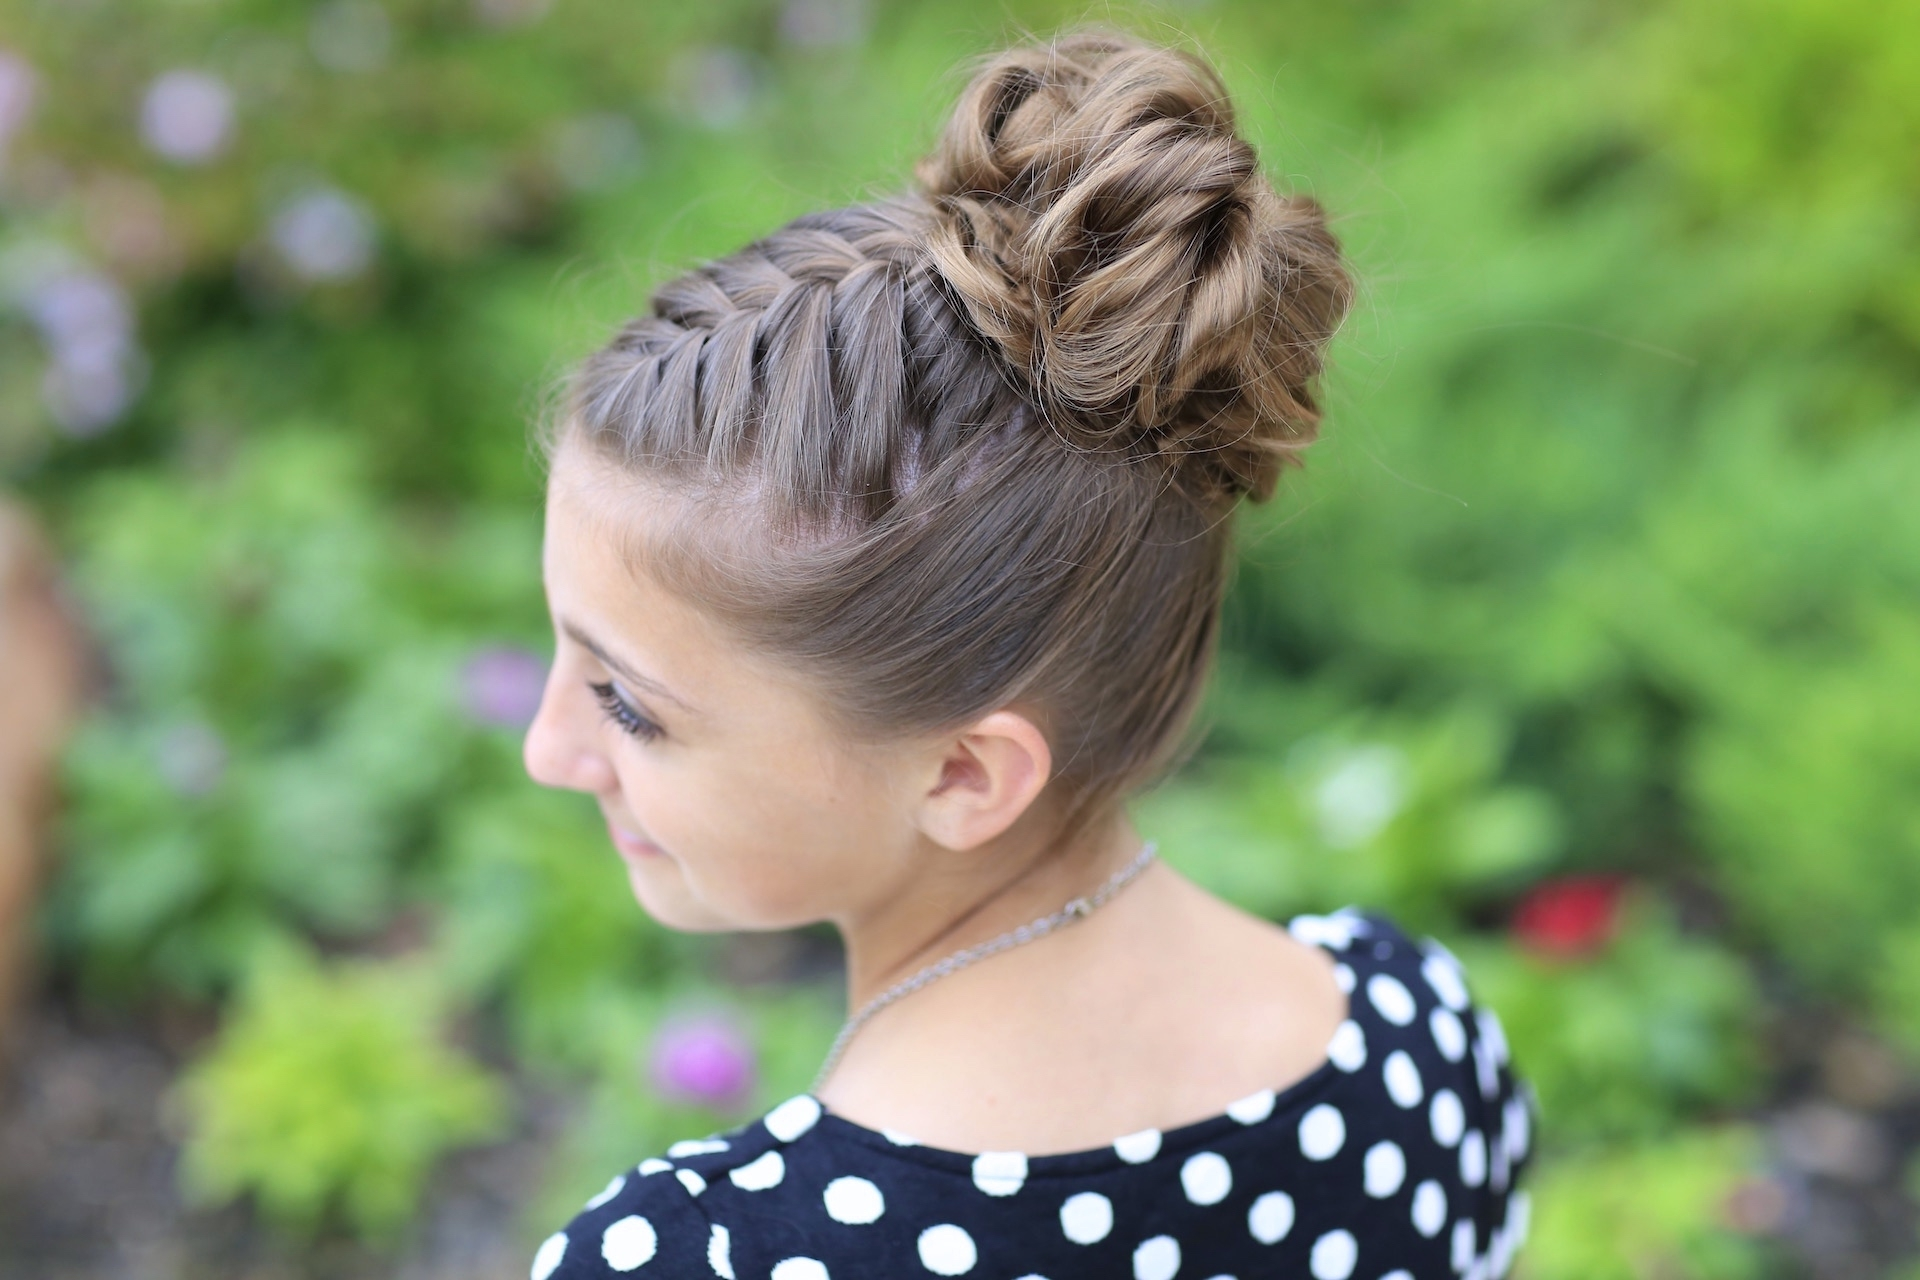 Cute Girls Hairstyles (View 13 of 15)